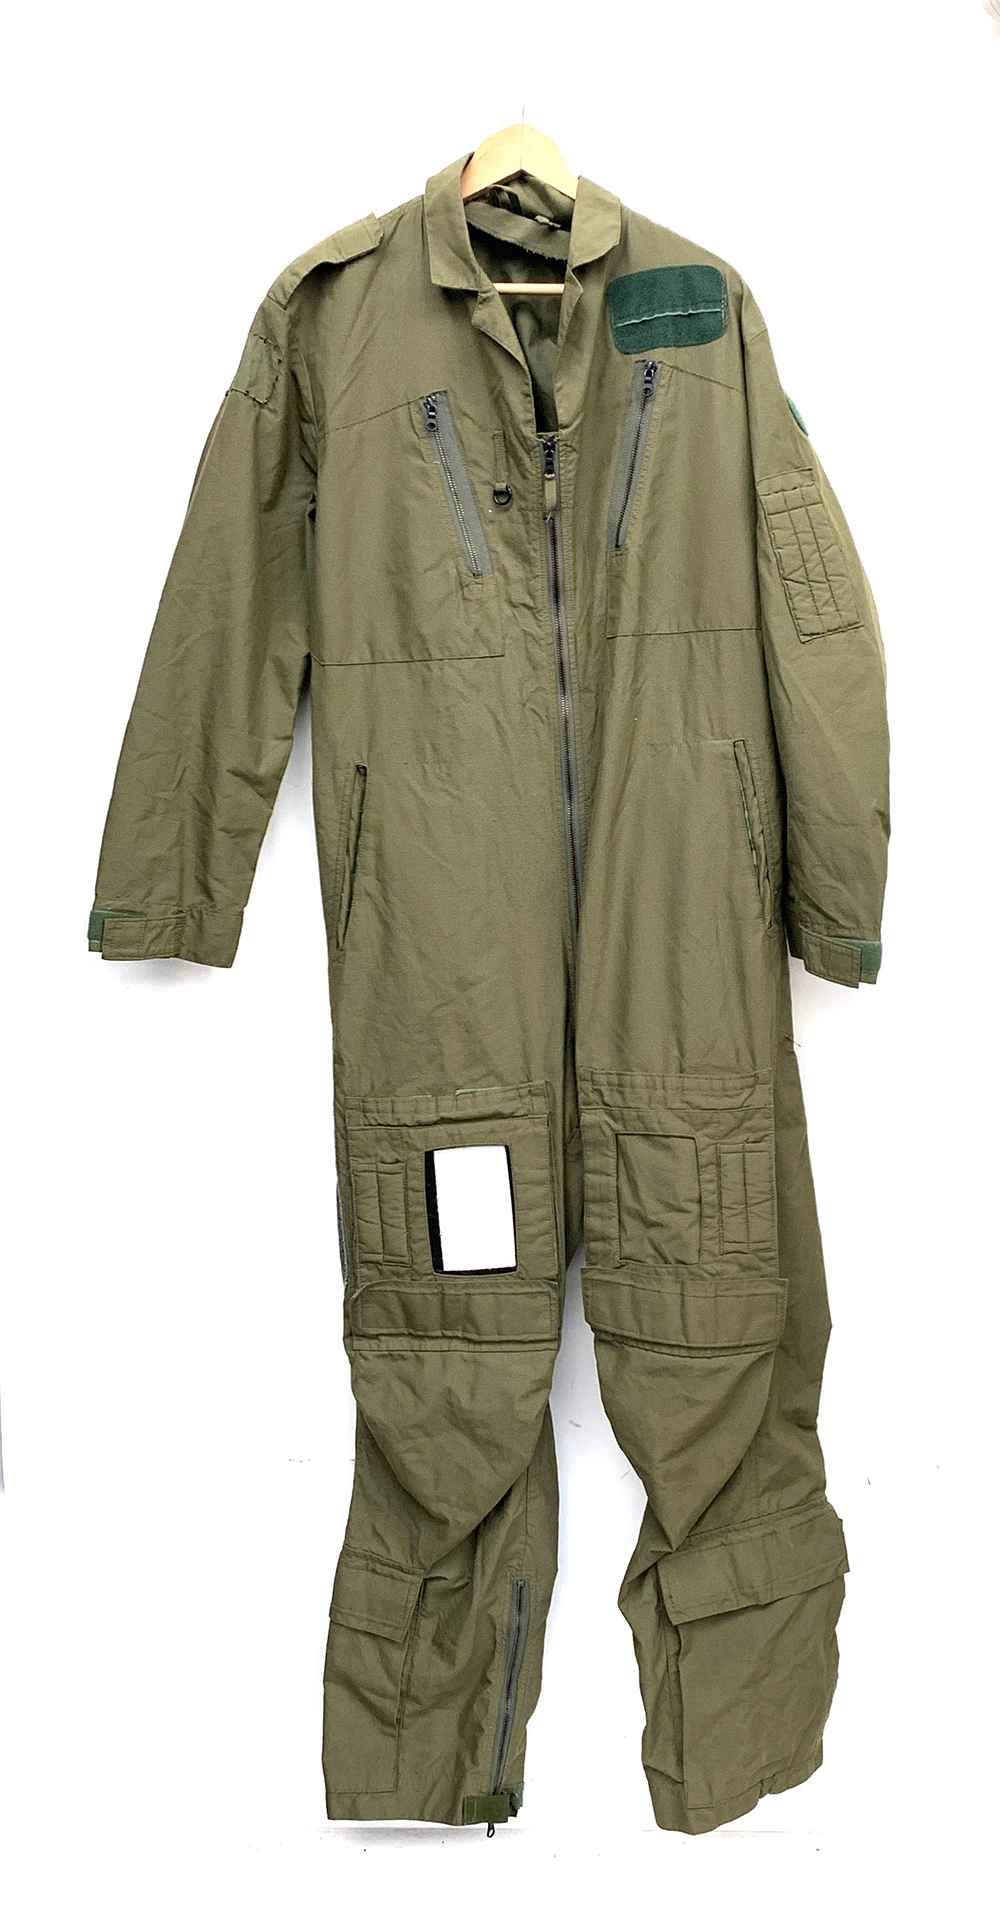 An RAF aircrew coverall Mk14A, size 9, chest 107/115; height 180/188